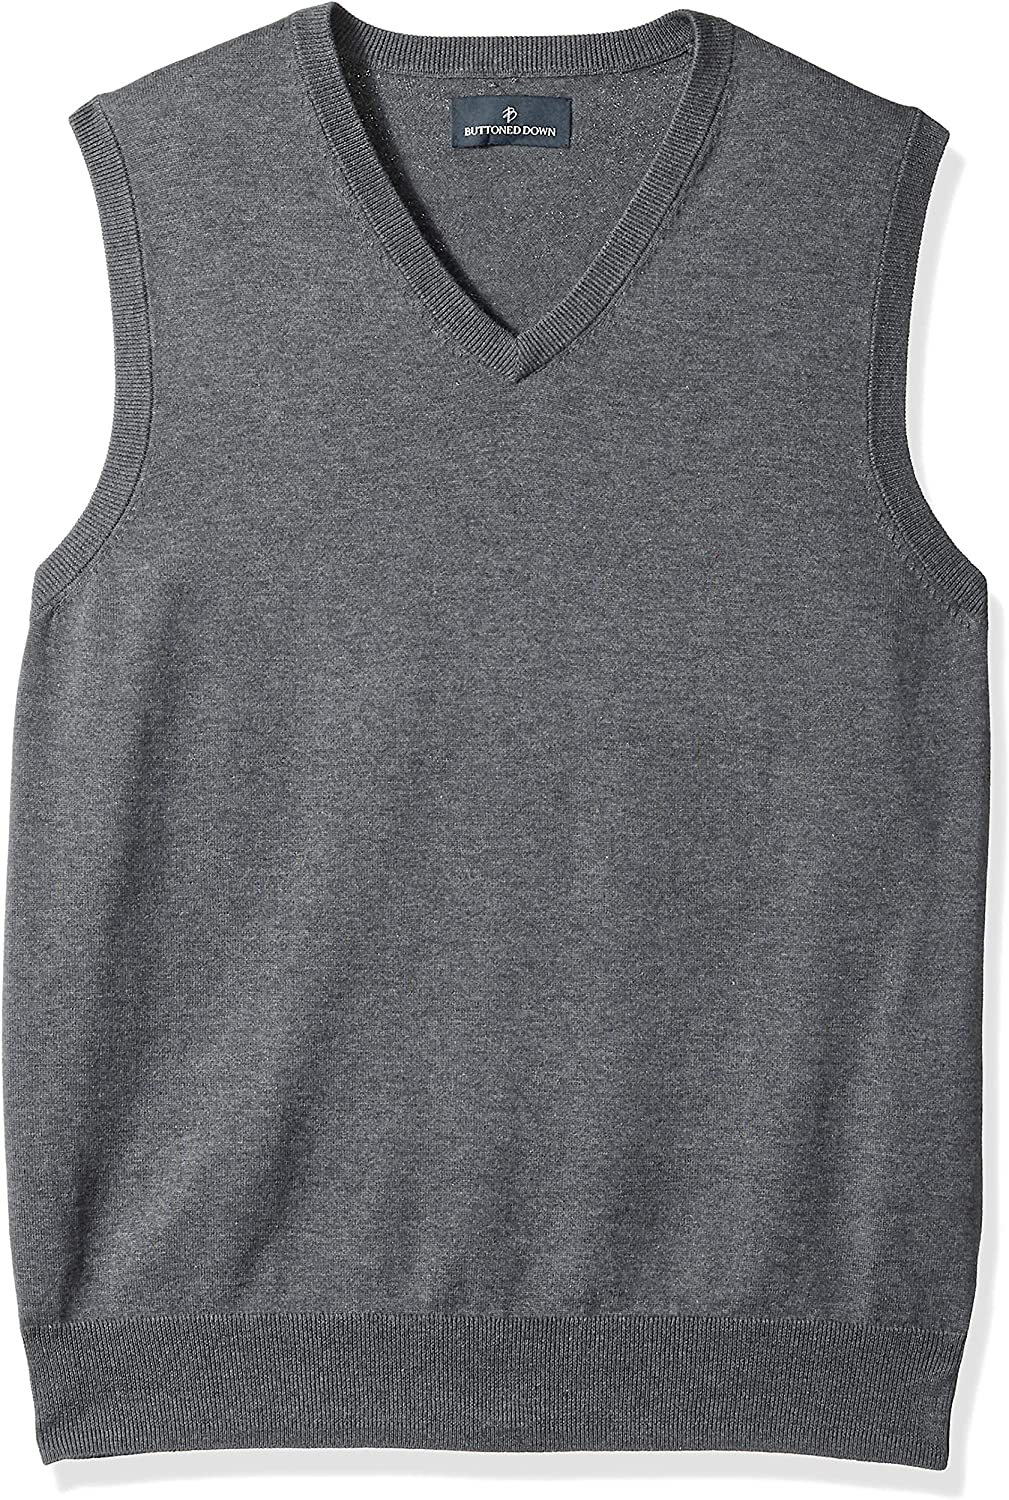 Max 90% OFF Amazon Brand - Buttoned Down Cotton Limited time cheap sale Lightweight Swe Supima Men's